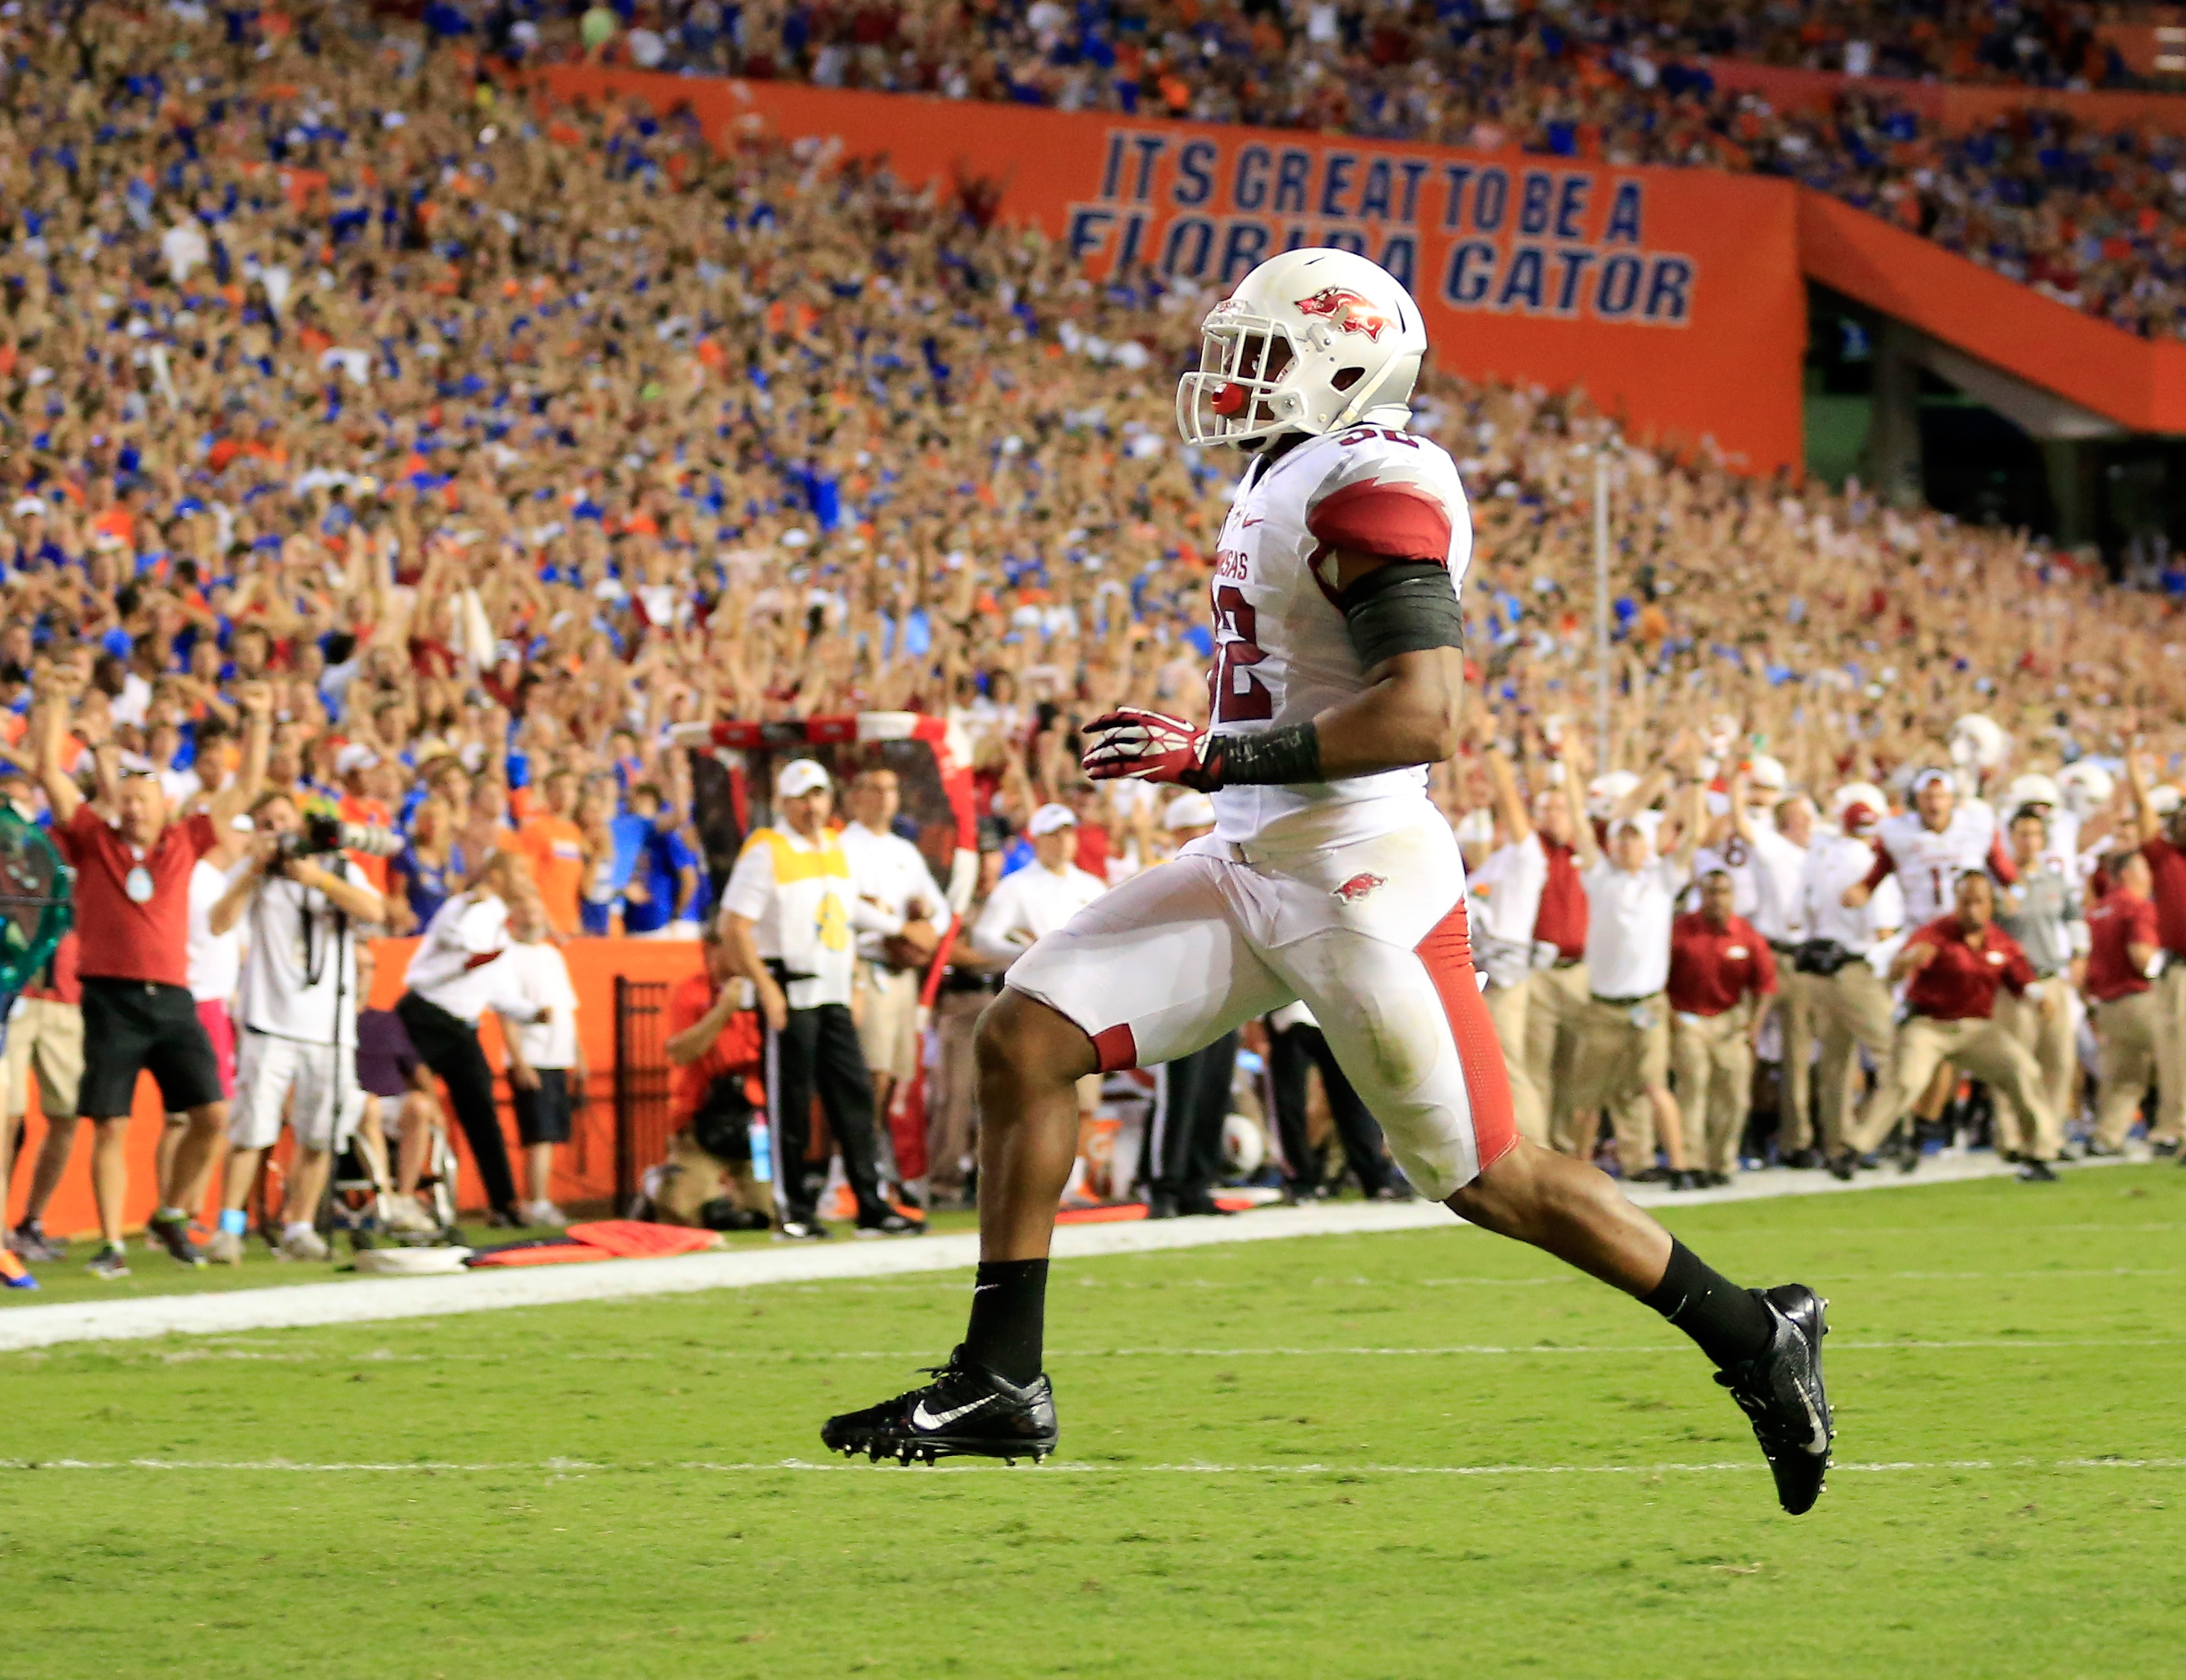 Jonathan Williams of the Arkansas Razorbacks crosses the goal line for a touchdown during the game against the Florida Gators at Ben Hill Griffin Stadium on October 5, 2013 in Gainesville, Florida.  (Getty Images)